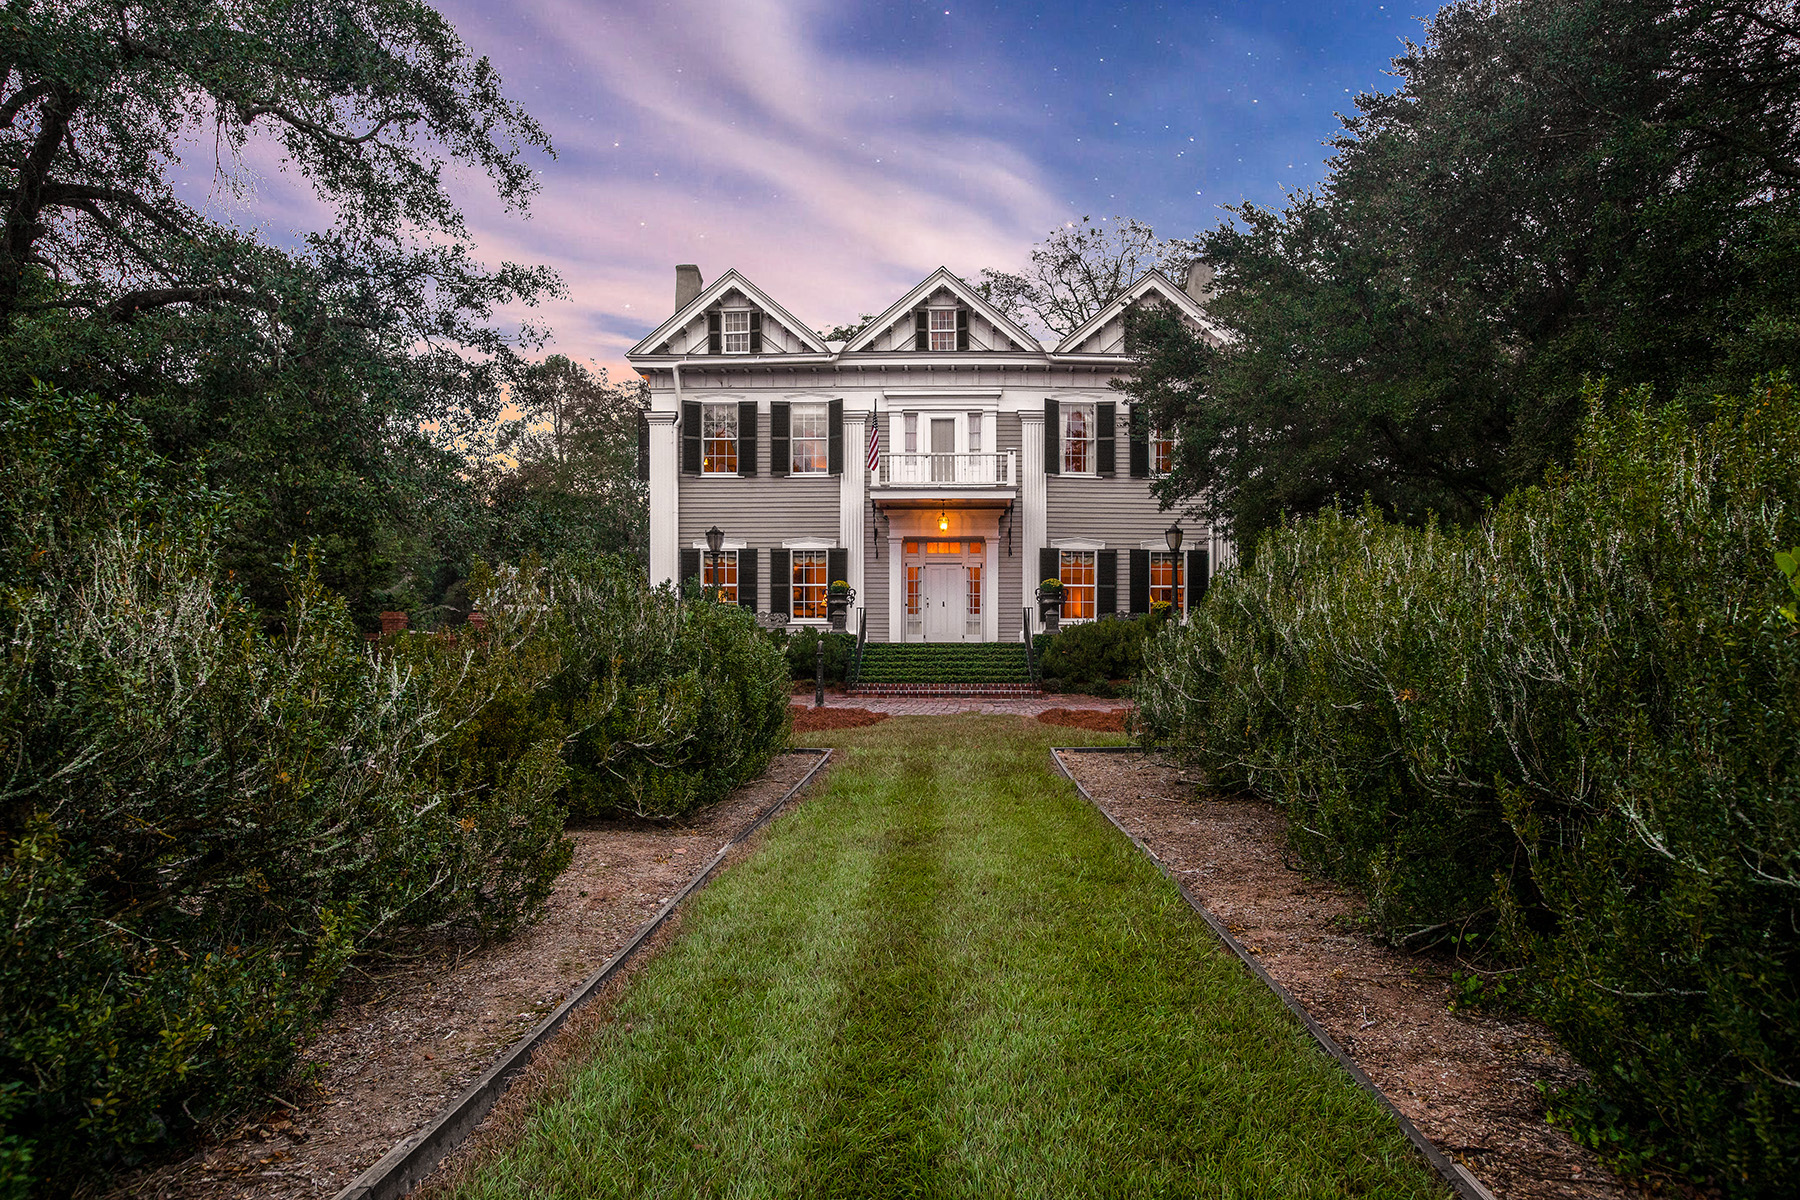 Single Family Homes のために 売買 アット Restored 1818 Home! One of The Most Distinguished Properties Of The South! 847 Dixie Avenue, Madison, ジョージア 30650 アメリカ